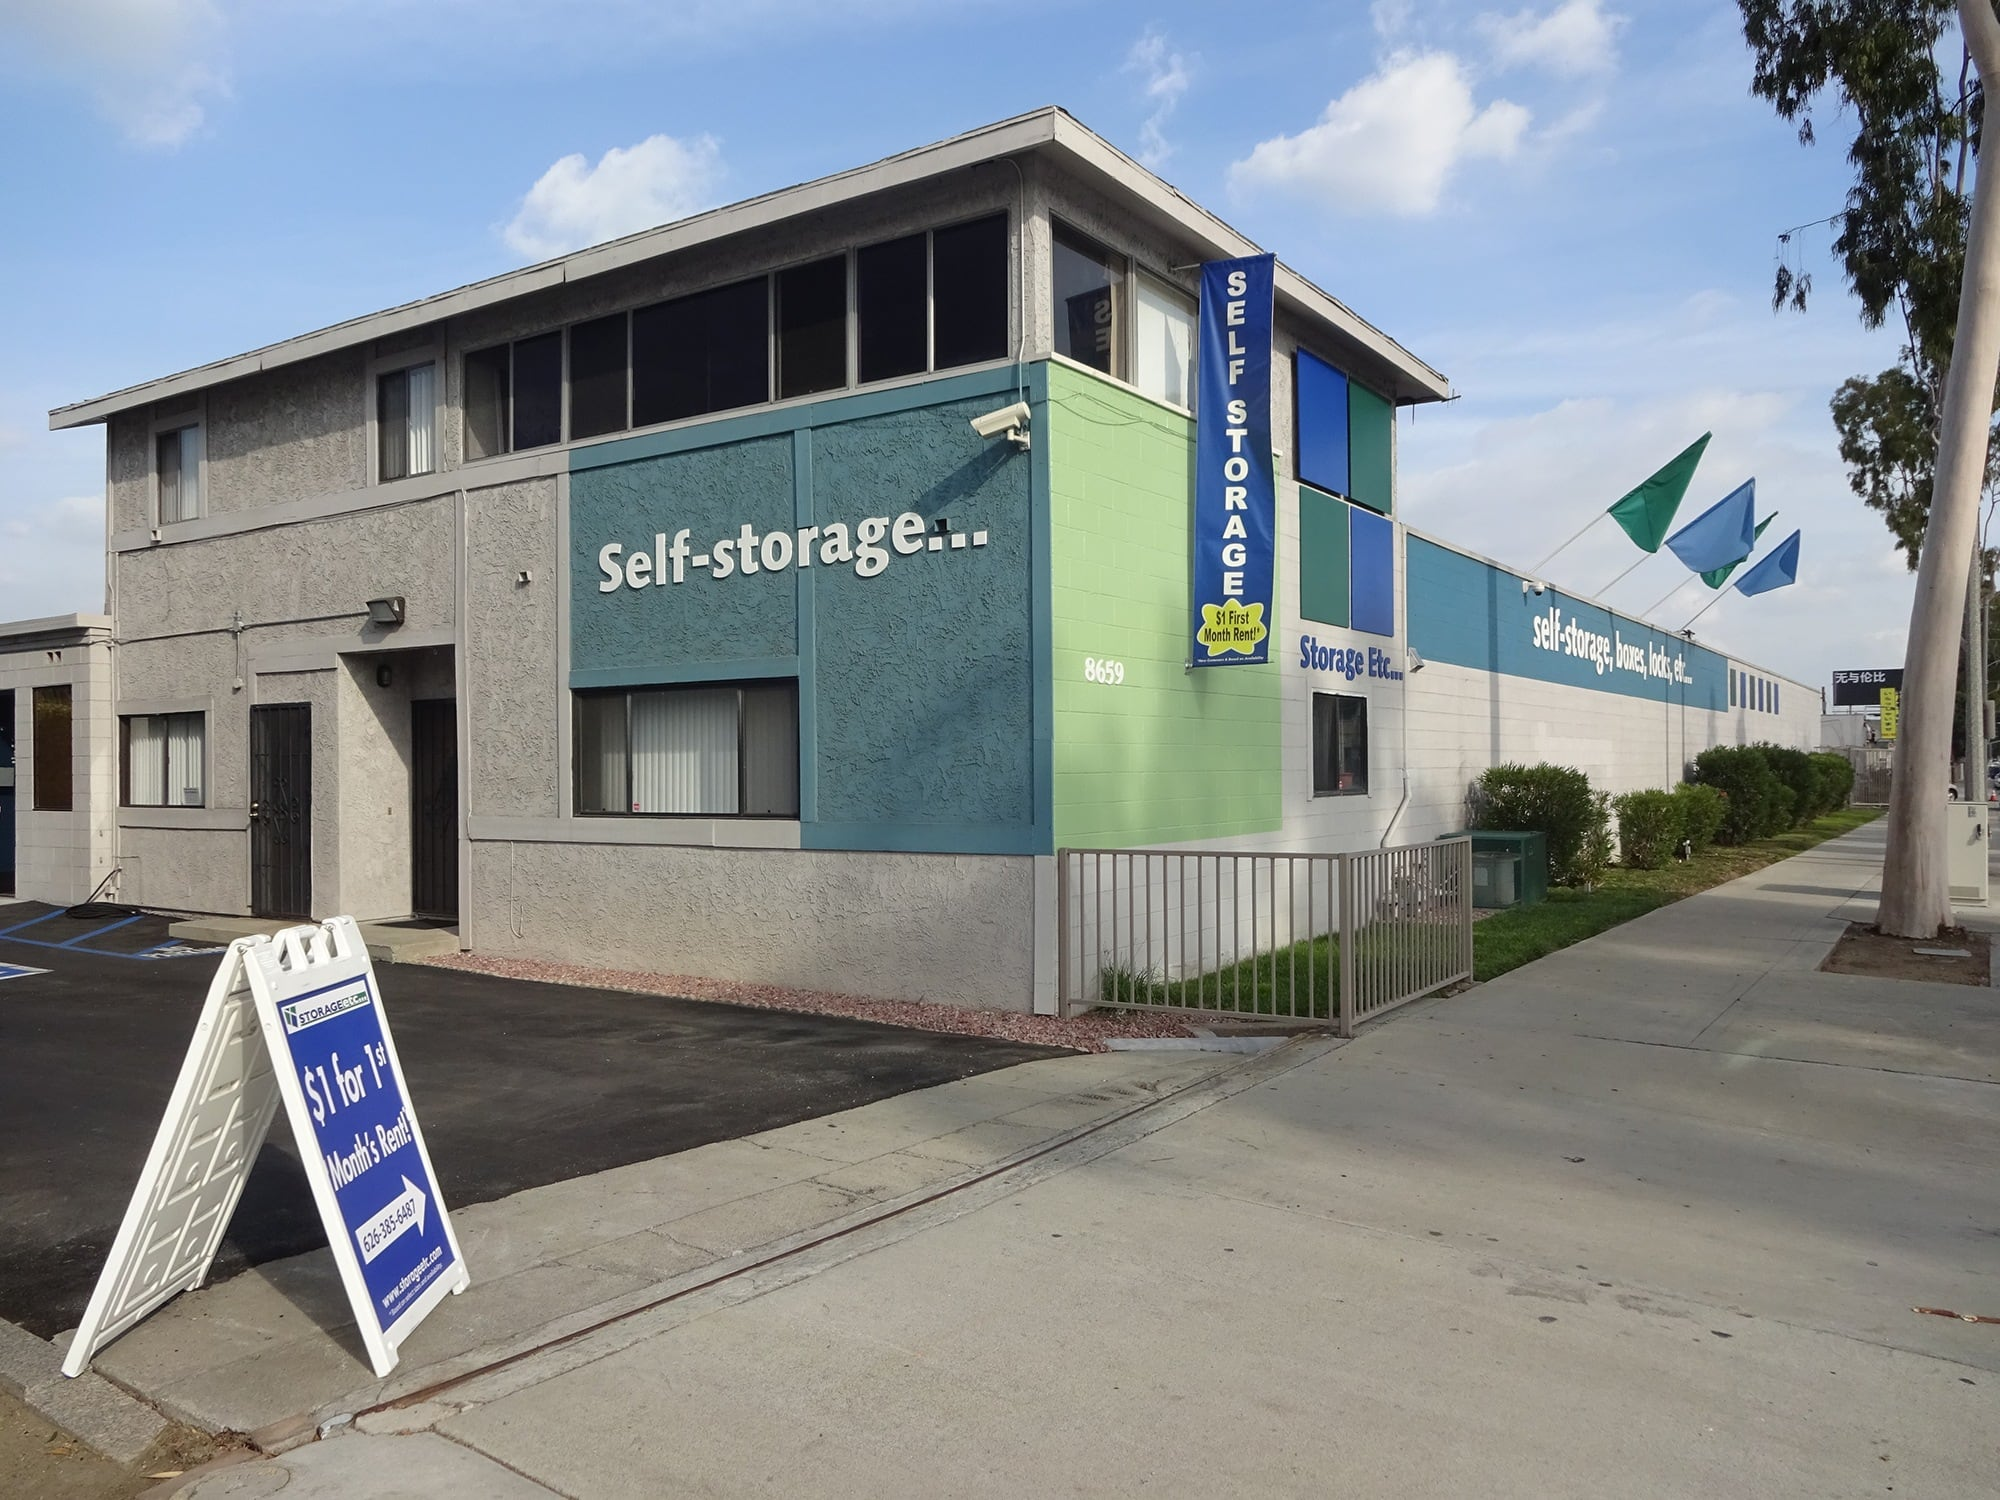 Self Storage Rental Office at Storage Etc... Rosemead